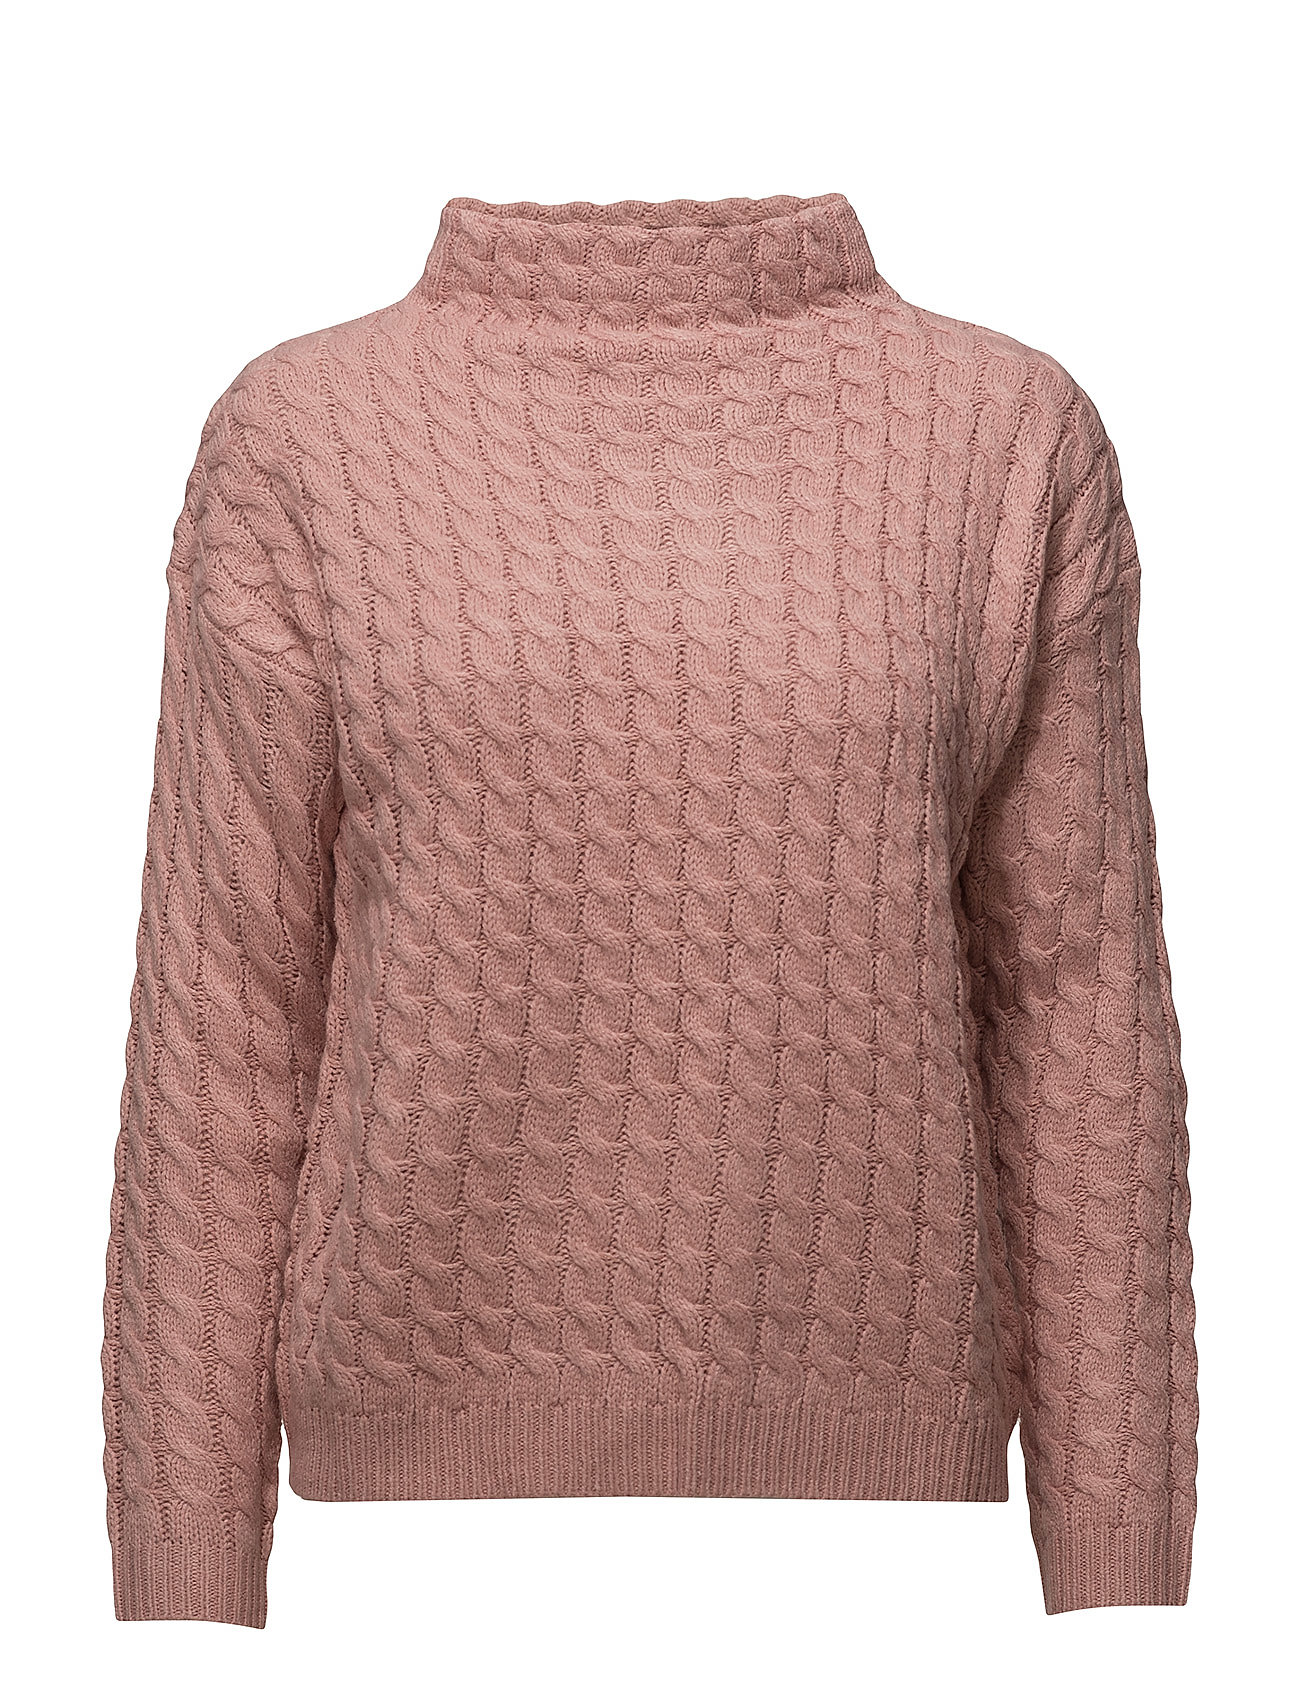 Image of Knitted Braided Sweater (2778818567)